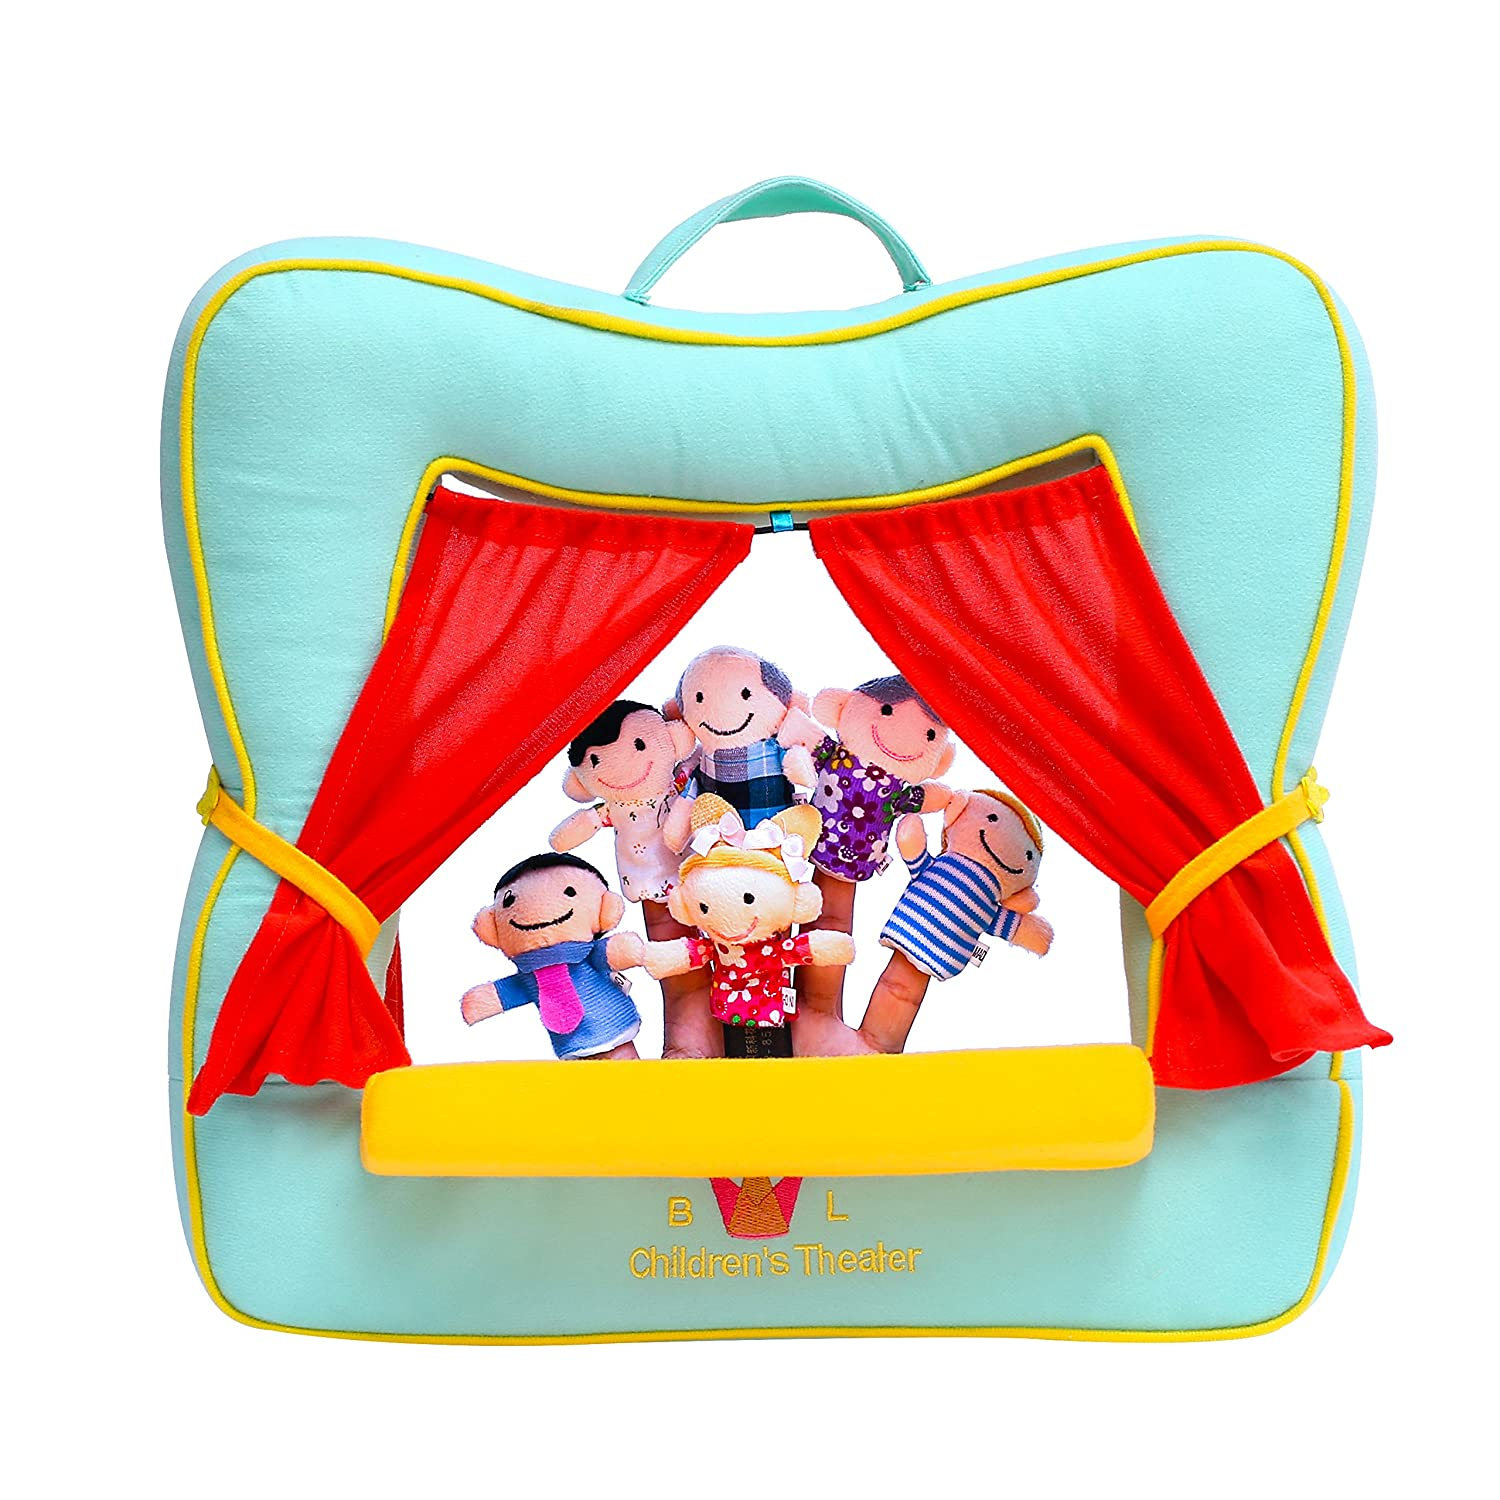 BETTERLINE Finger Puppet Theatre Stage - Set Includes 6 Finger Family Puppets - Portable Plush Finger Puppet Theater (Spring Green Color) Better Line ® NY6085 Green